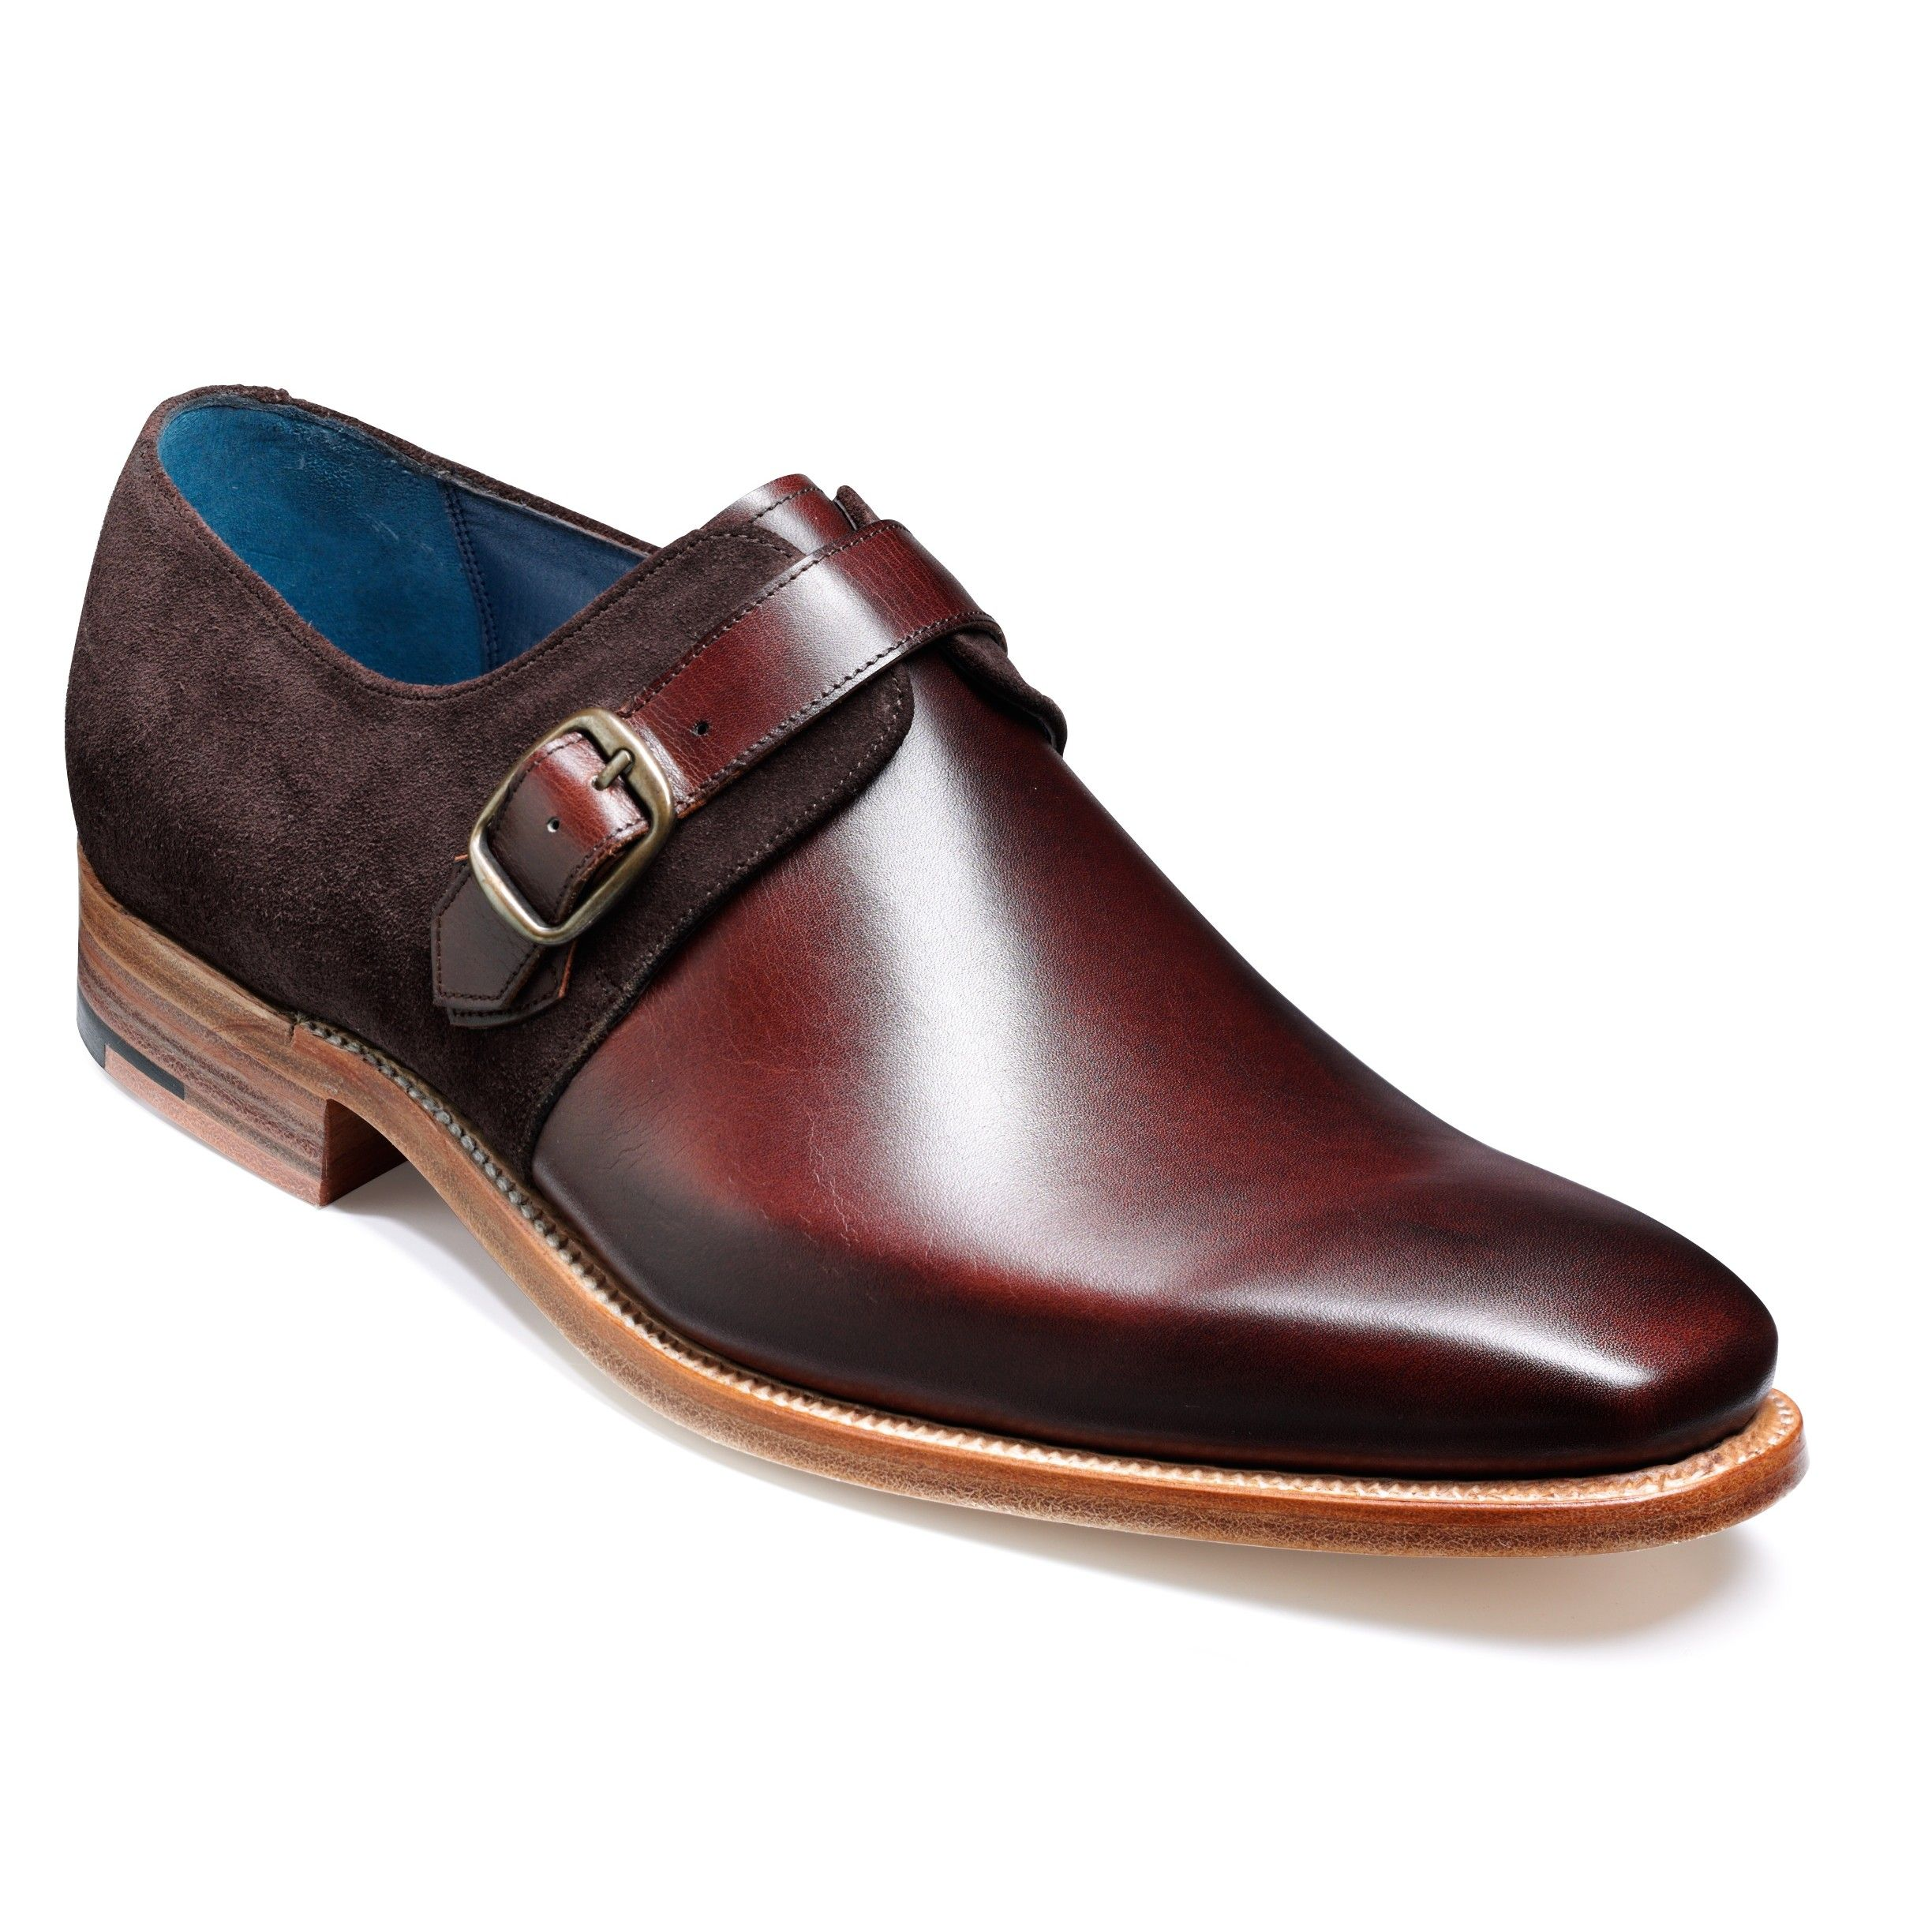 13633dc5ca To really get the autumnal vibes going, check out Barker's newest shoe -  Barker Jasper